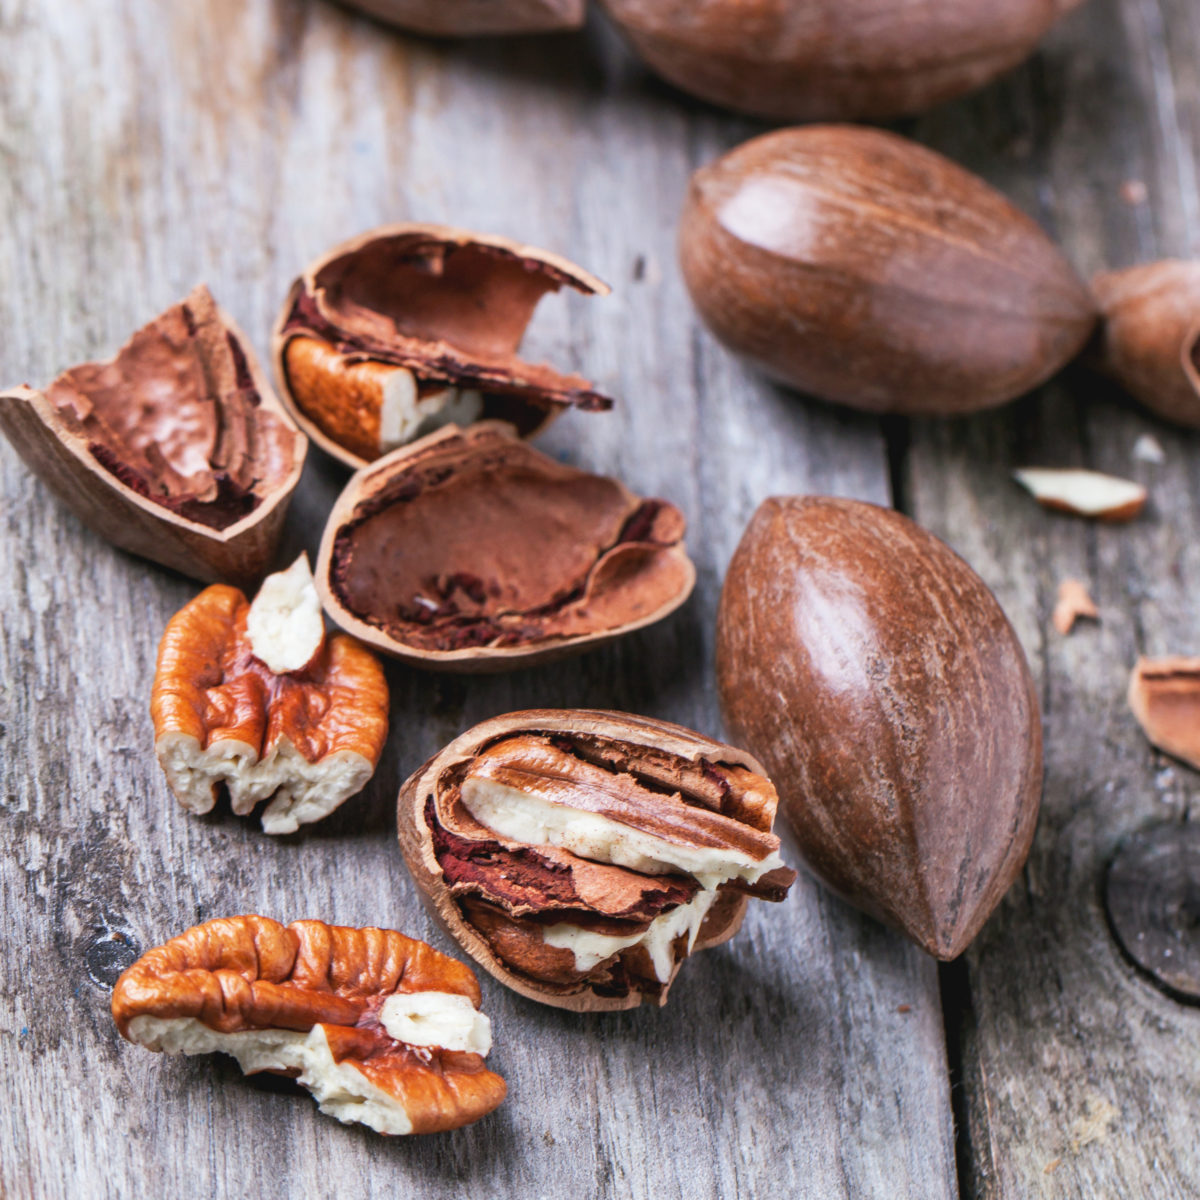 Whole and chopped pecan nuts on old wooden table. Square image